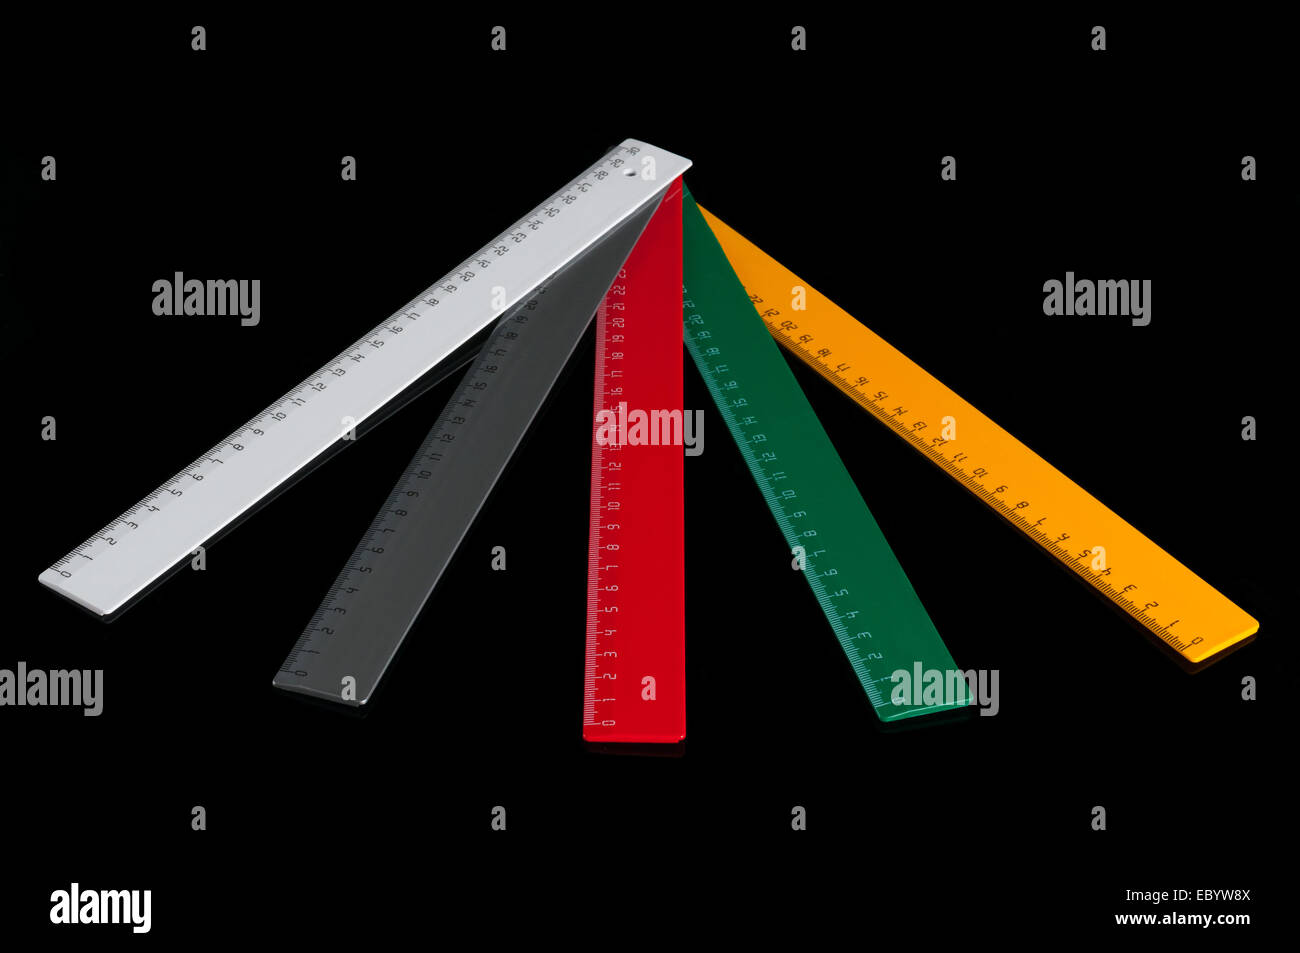 Five colorful rulers isolated on black background - Stock Image